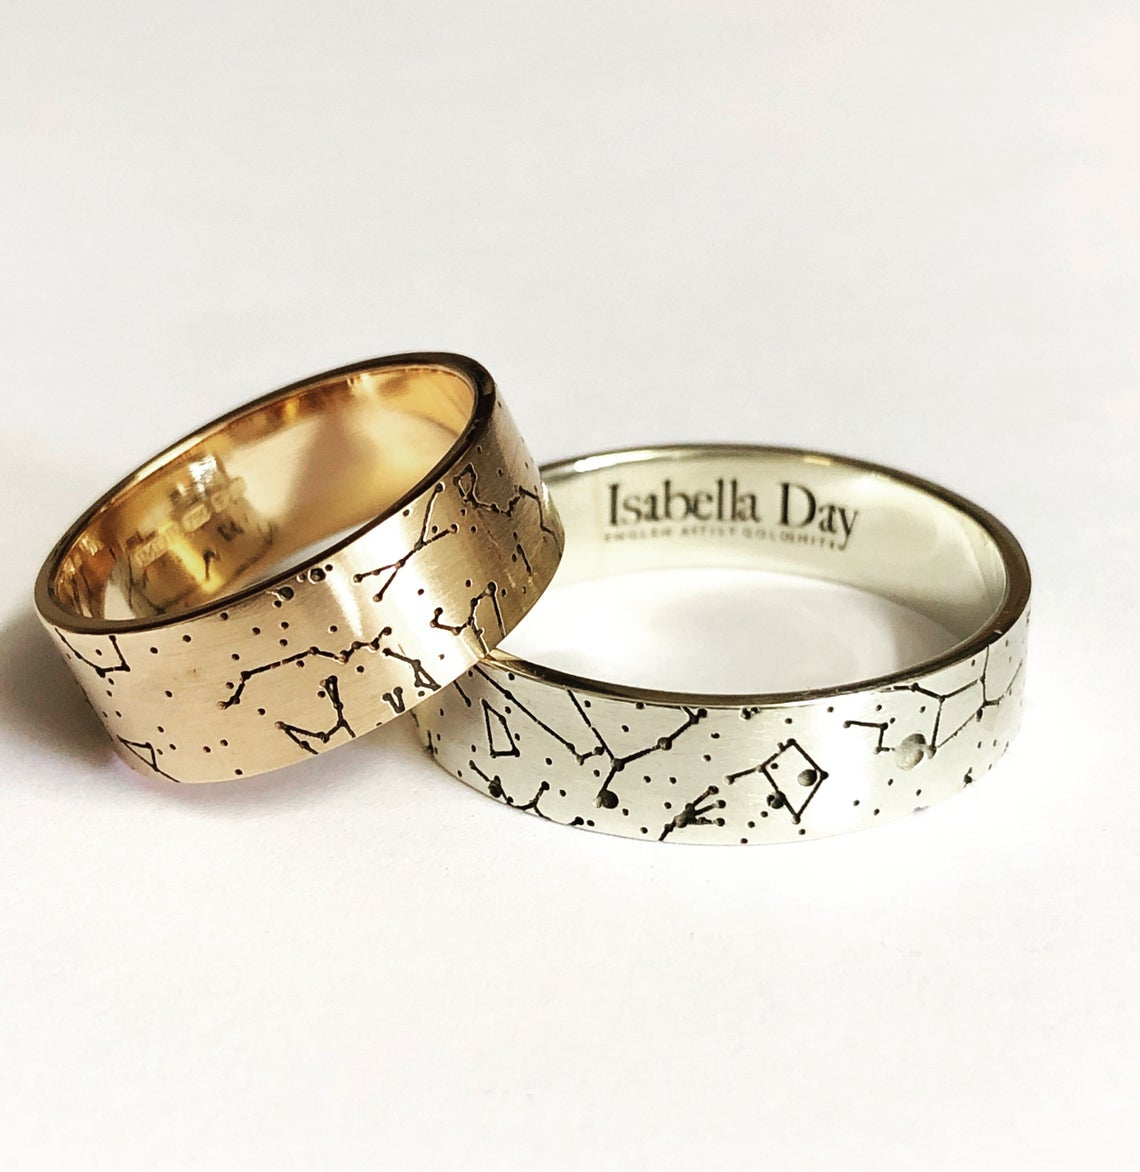 Written in the stars Wedding bands, Star Map Partnership Rings, Constellation wedding bands, Moment in Time